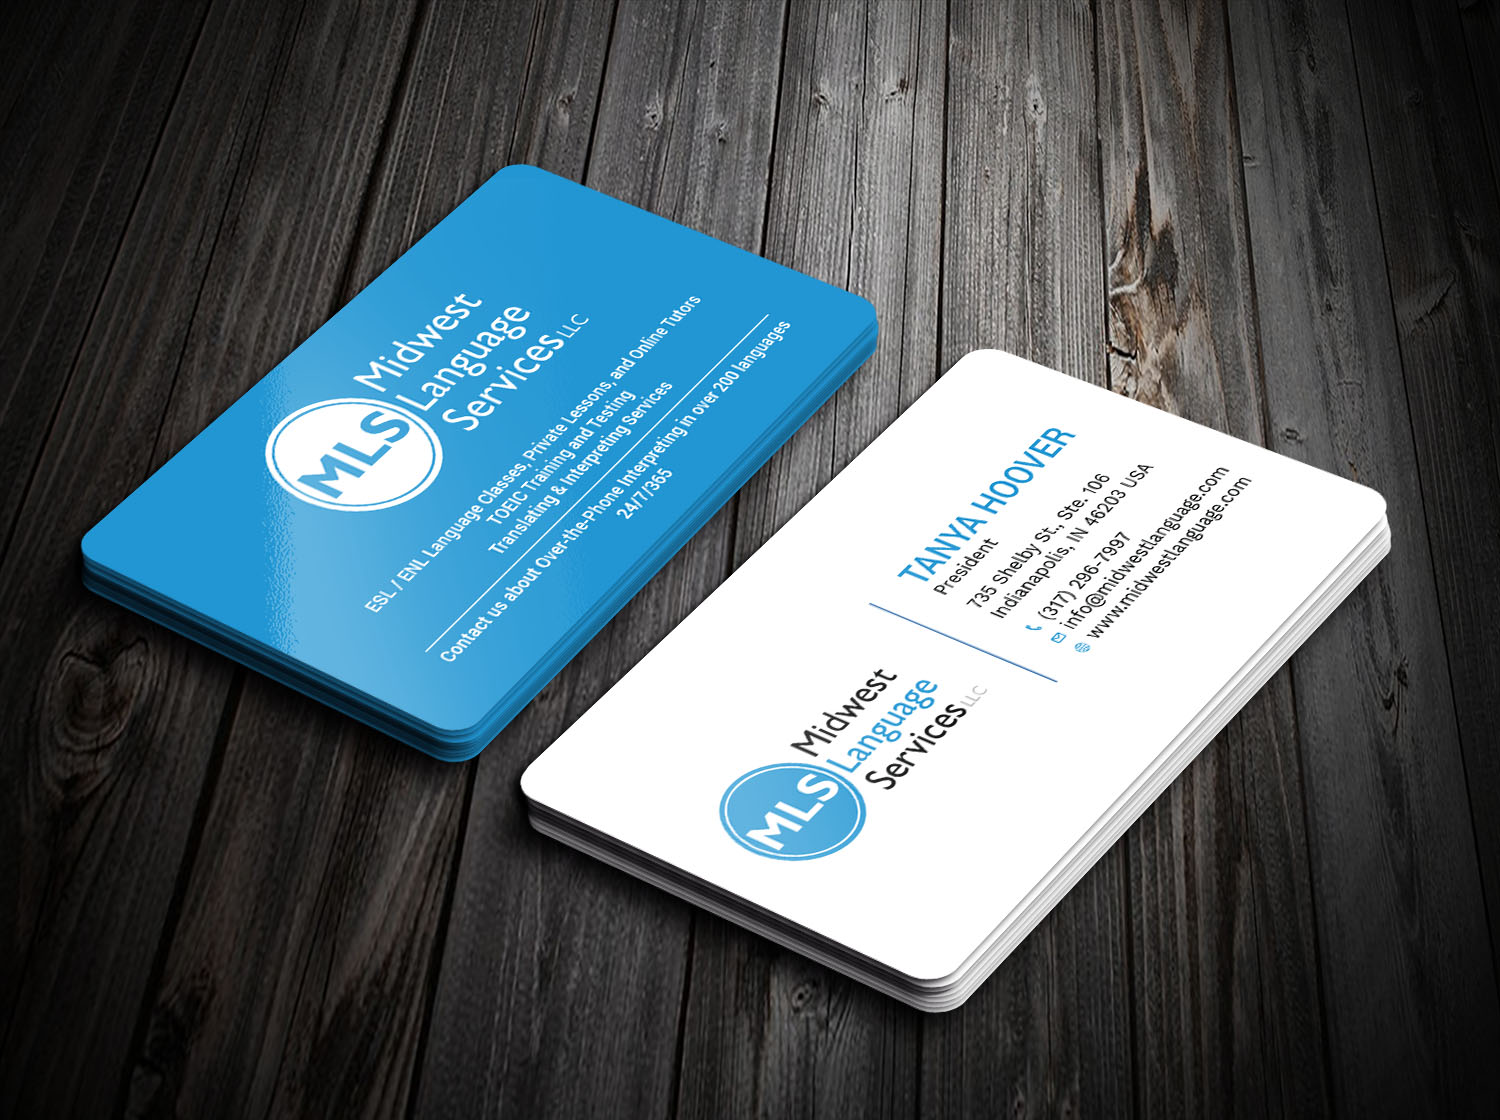 Serious modern business business card design for midwest language business card design by avanger000 for midwest language services llc design 17732986 colourmoves